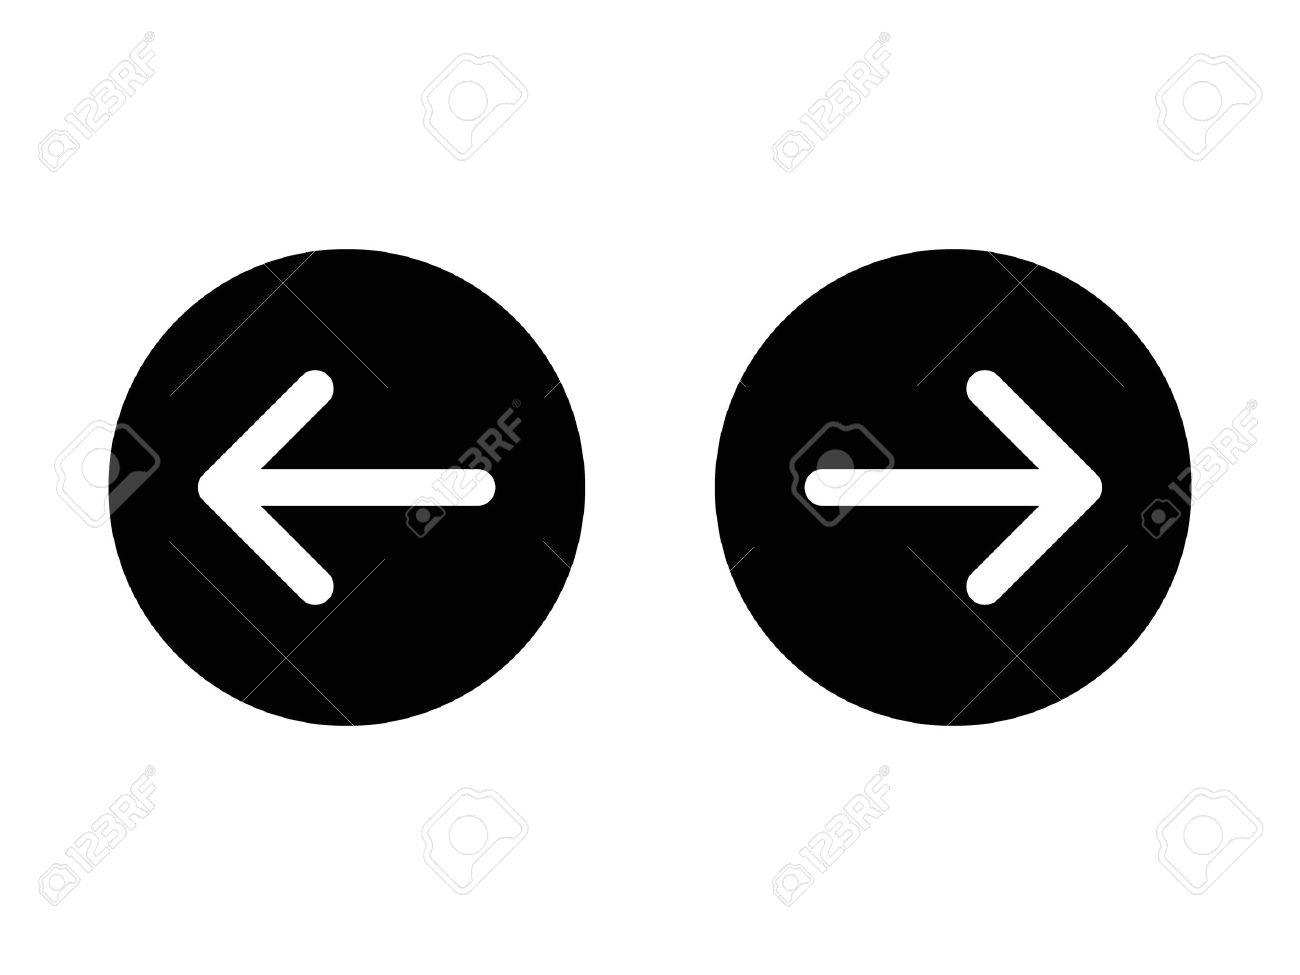 Left and right, previous and next or back and forth round arrows flat icon for apps and websites - 58944882